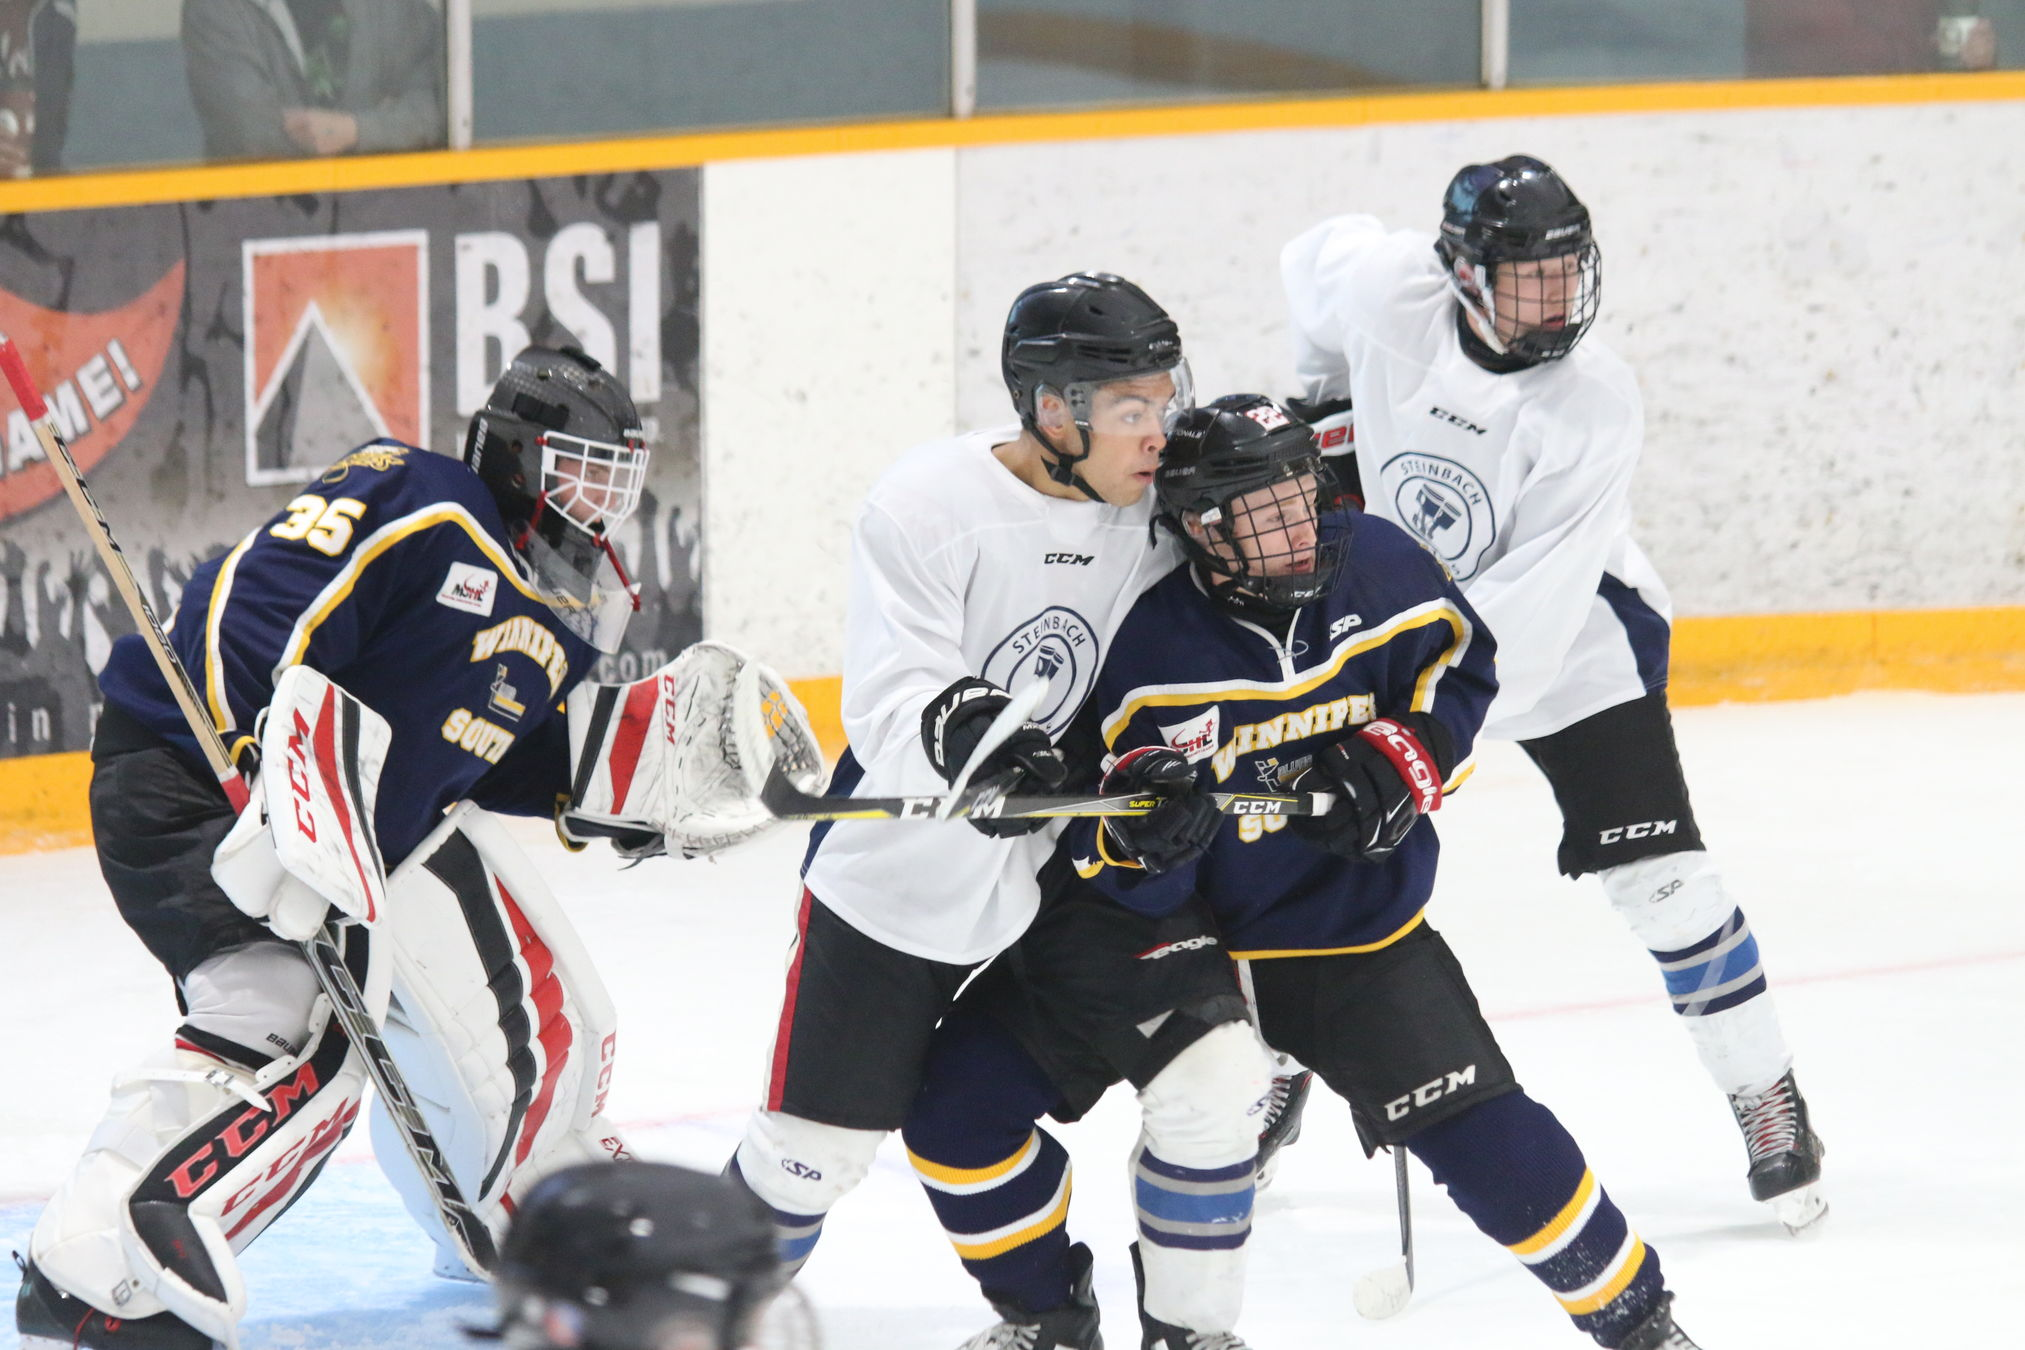 The Steinbach Pistons edged the Winnipeg Blues 6-5 Tuesday night in Steinbach in an all-rookie MJHL pre-season game.